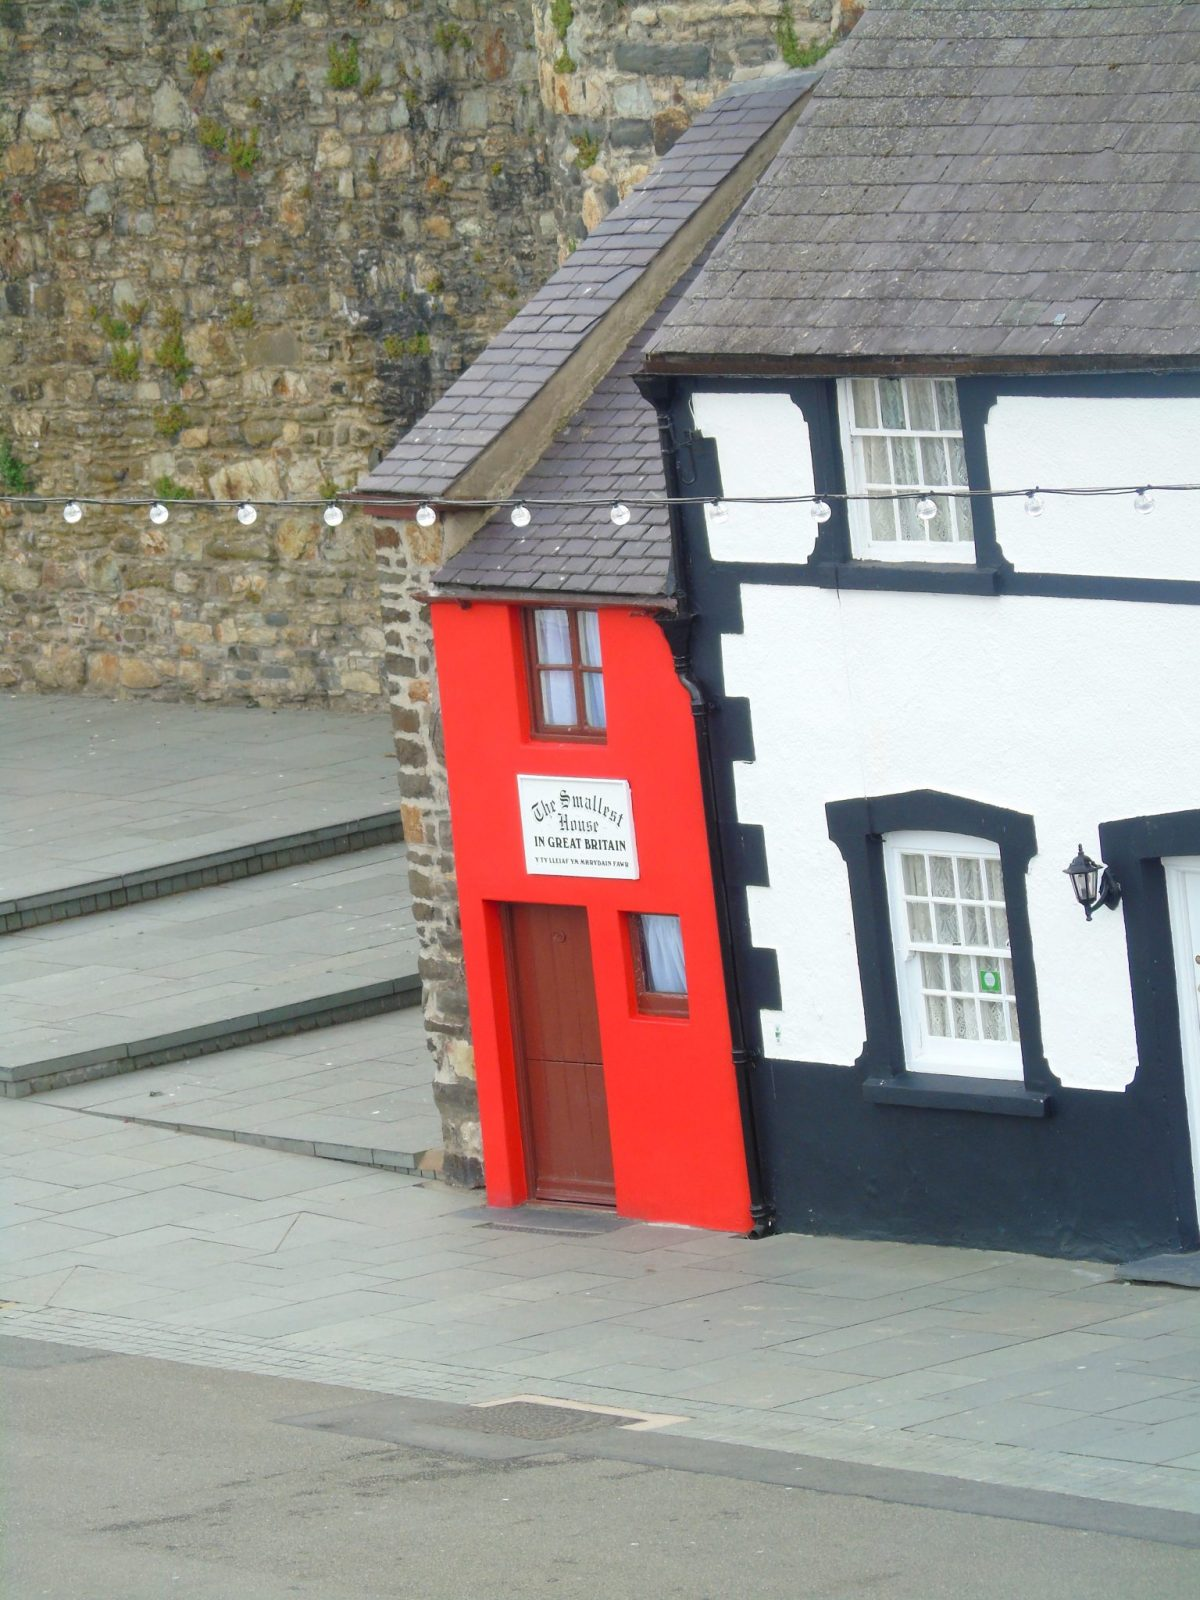 The Smallest House in Britain